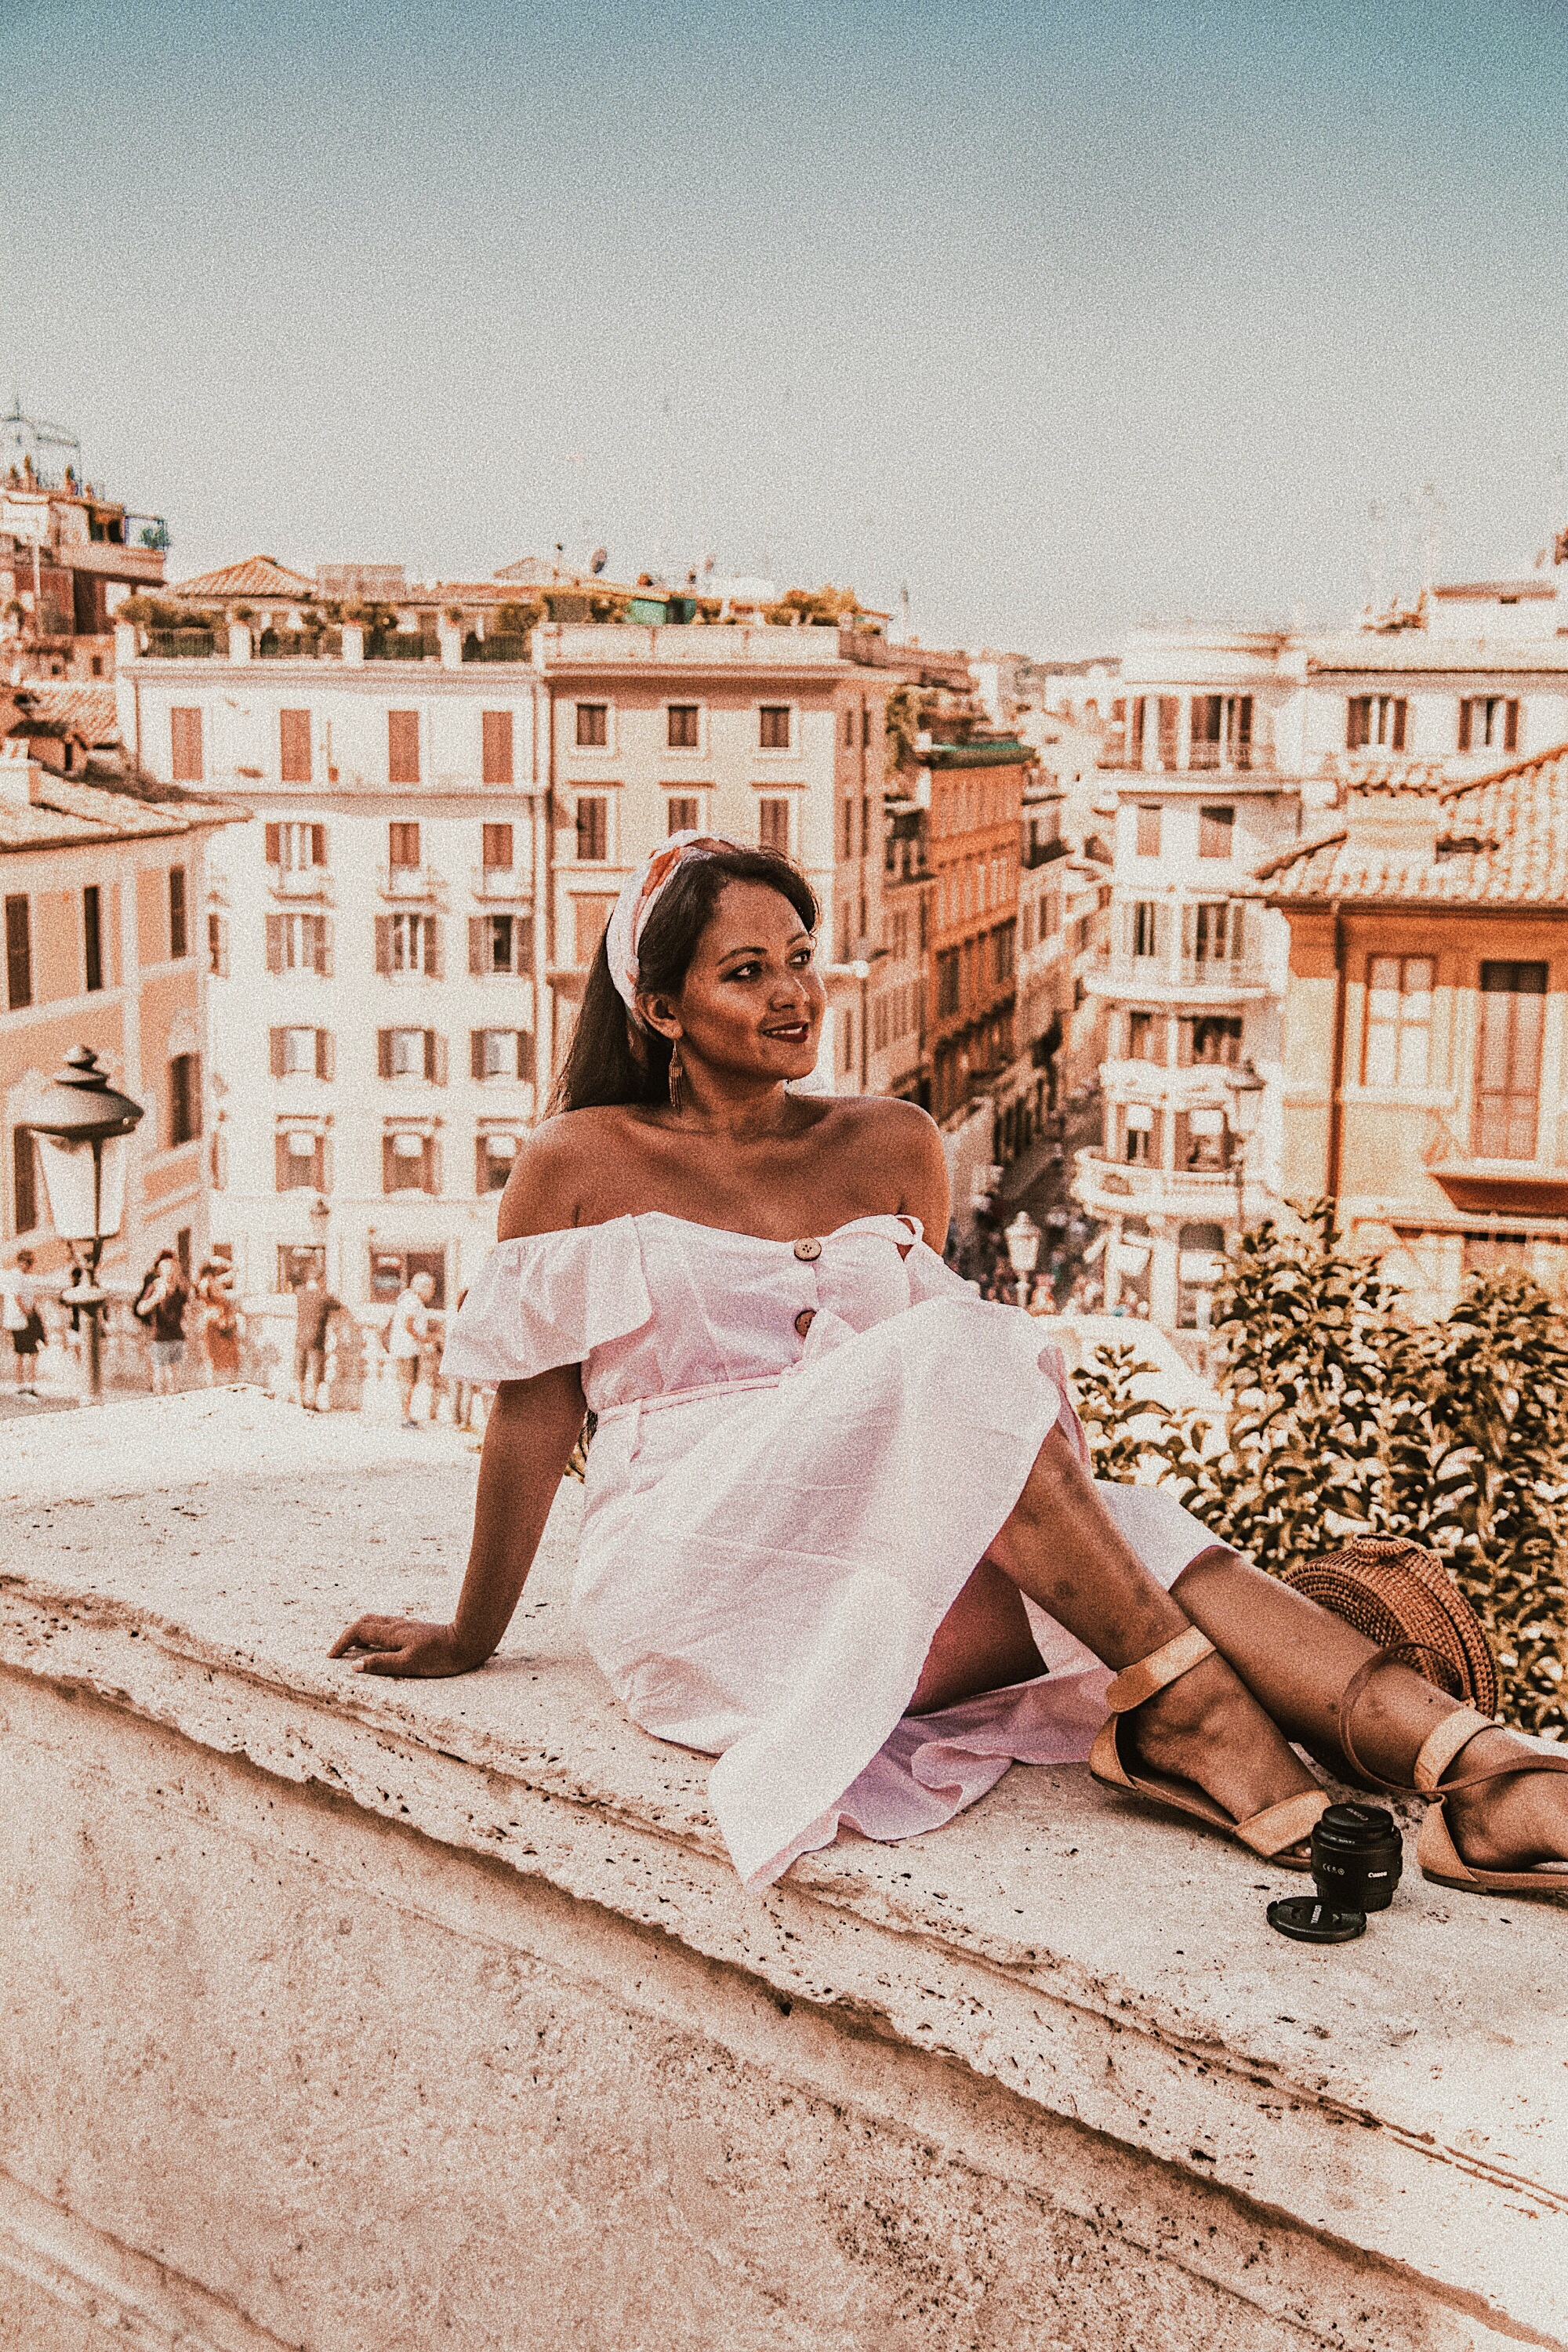 How-To-Wear-Off-Shoulder-Dress-Light-Blush-Pink-Button-Down-Dress-Rattan-Straw-Basket-Bag-Flat-Sandal-Headwrap-Paris-Chic-Style-Fashion-Lookbook-Street-Style-Rome-Italy-5